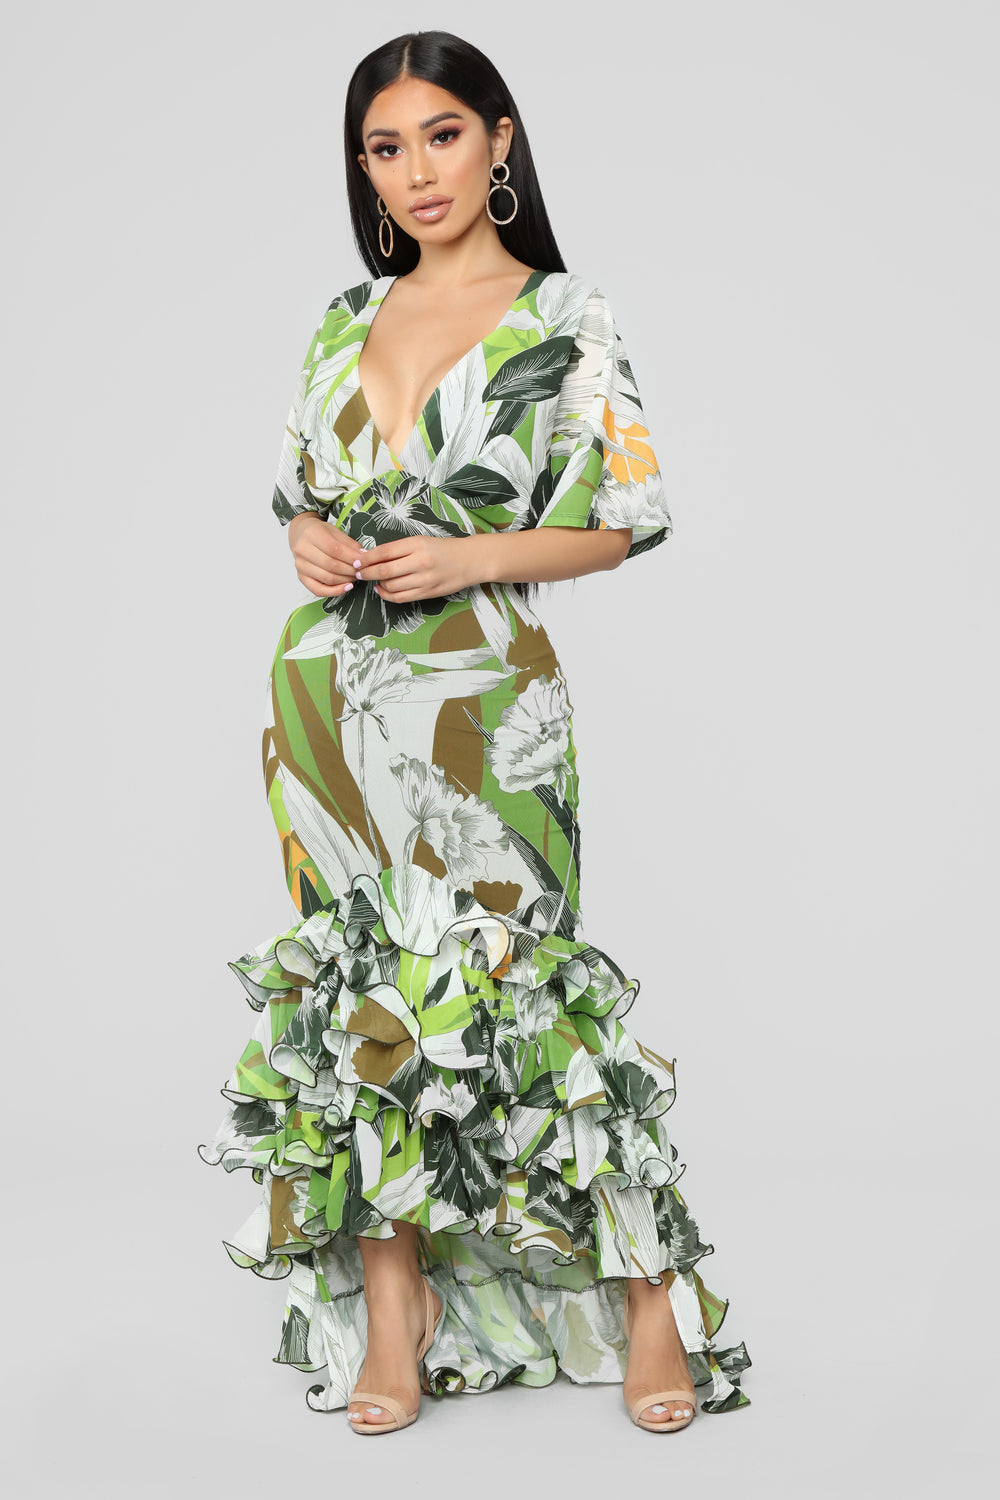 Queen Of The Tropics Ruffle Dress - Black/Green